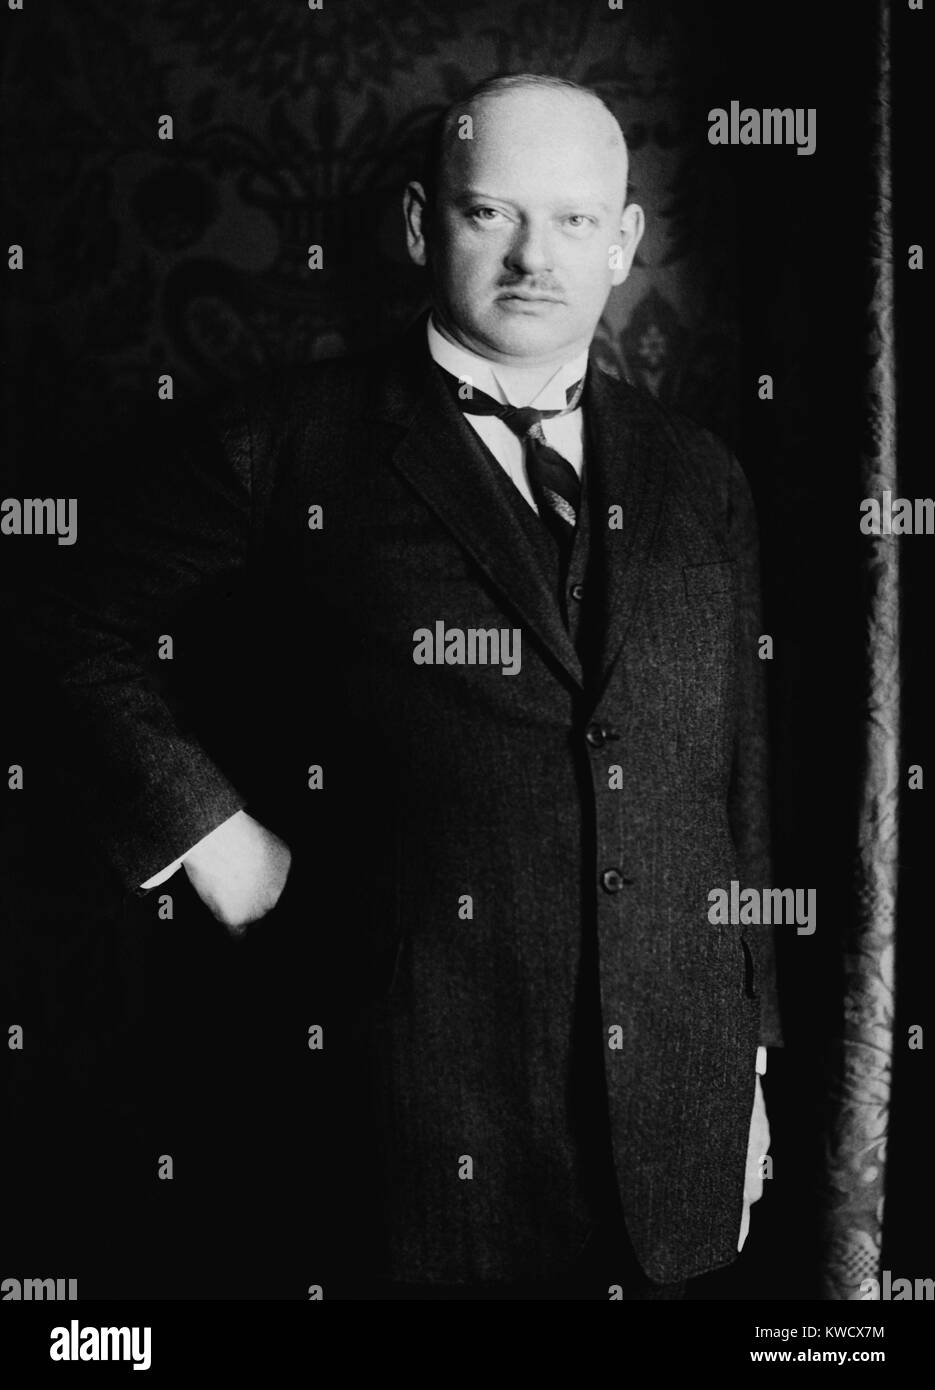 Gustav Stresemann, German liberal politician and statesman, served as Foreign Minister from 1923-29. Stresemann - Stock Image